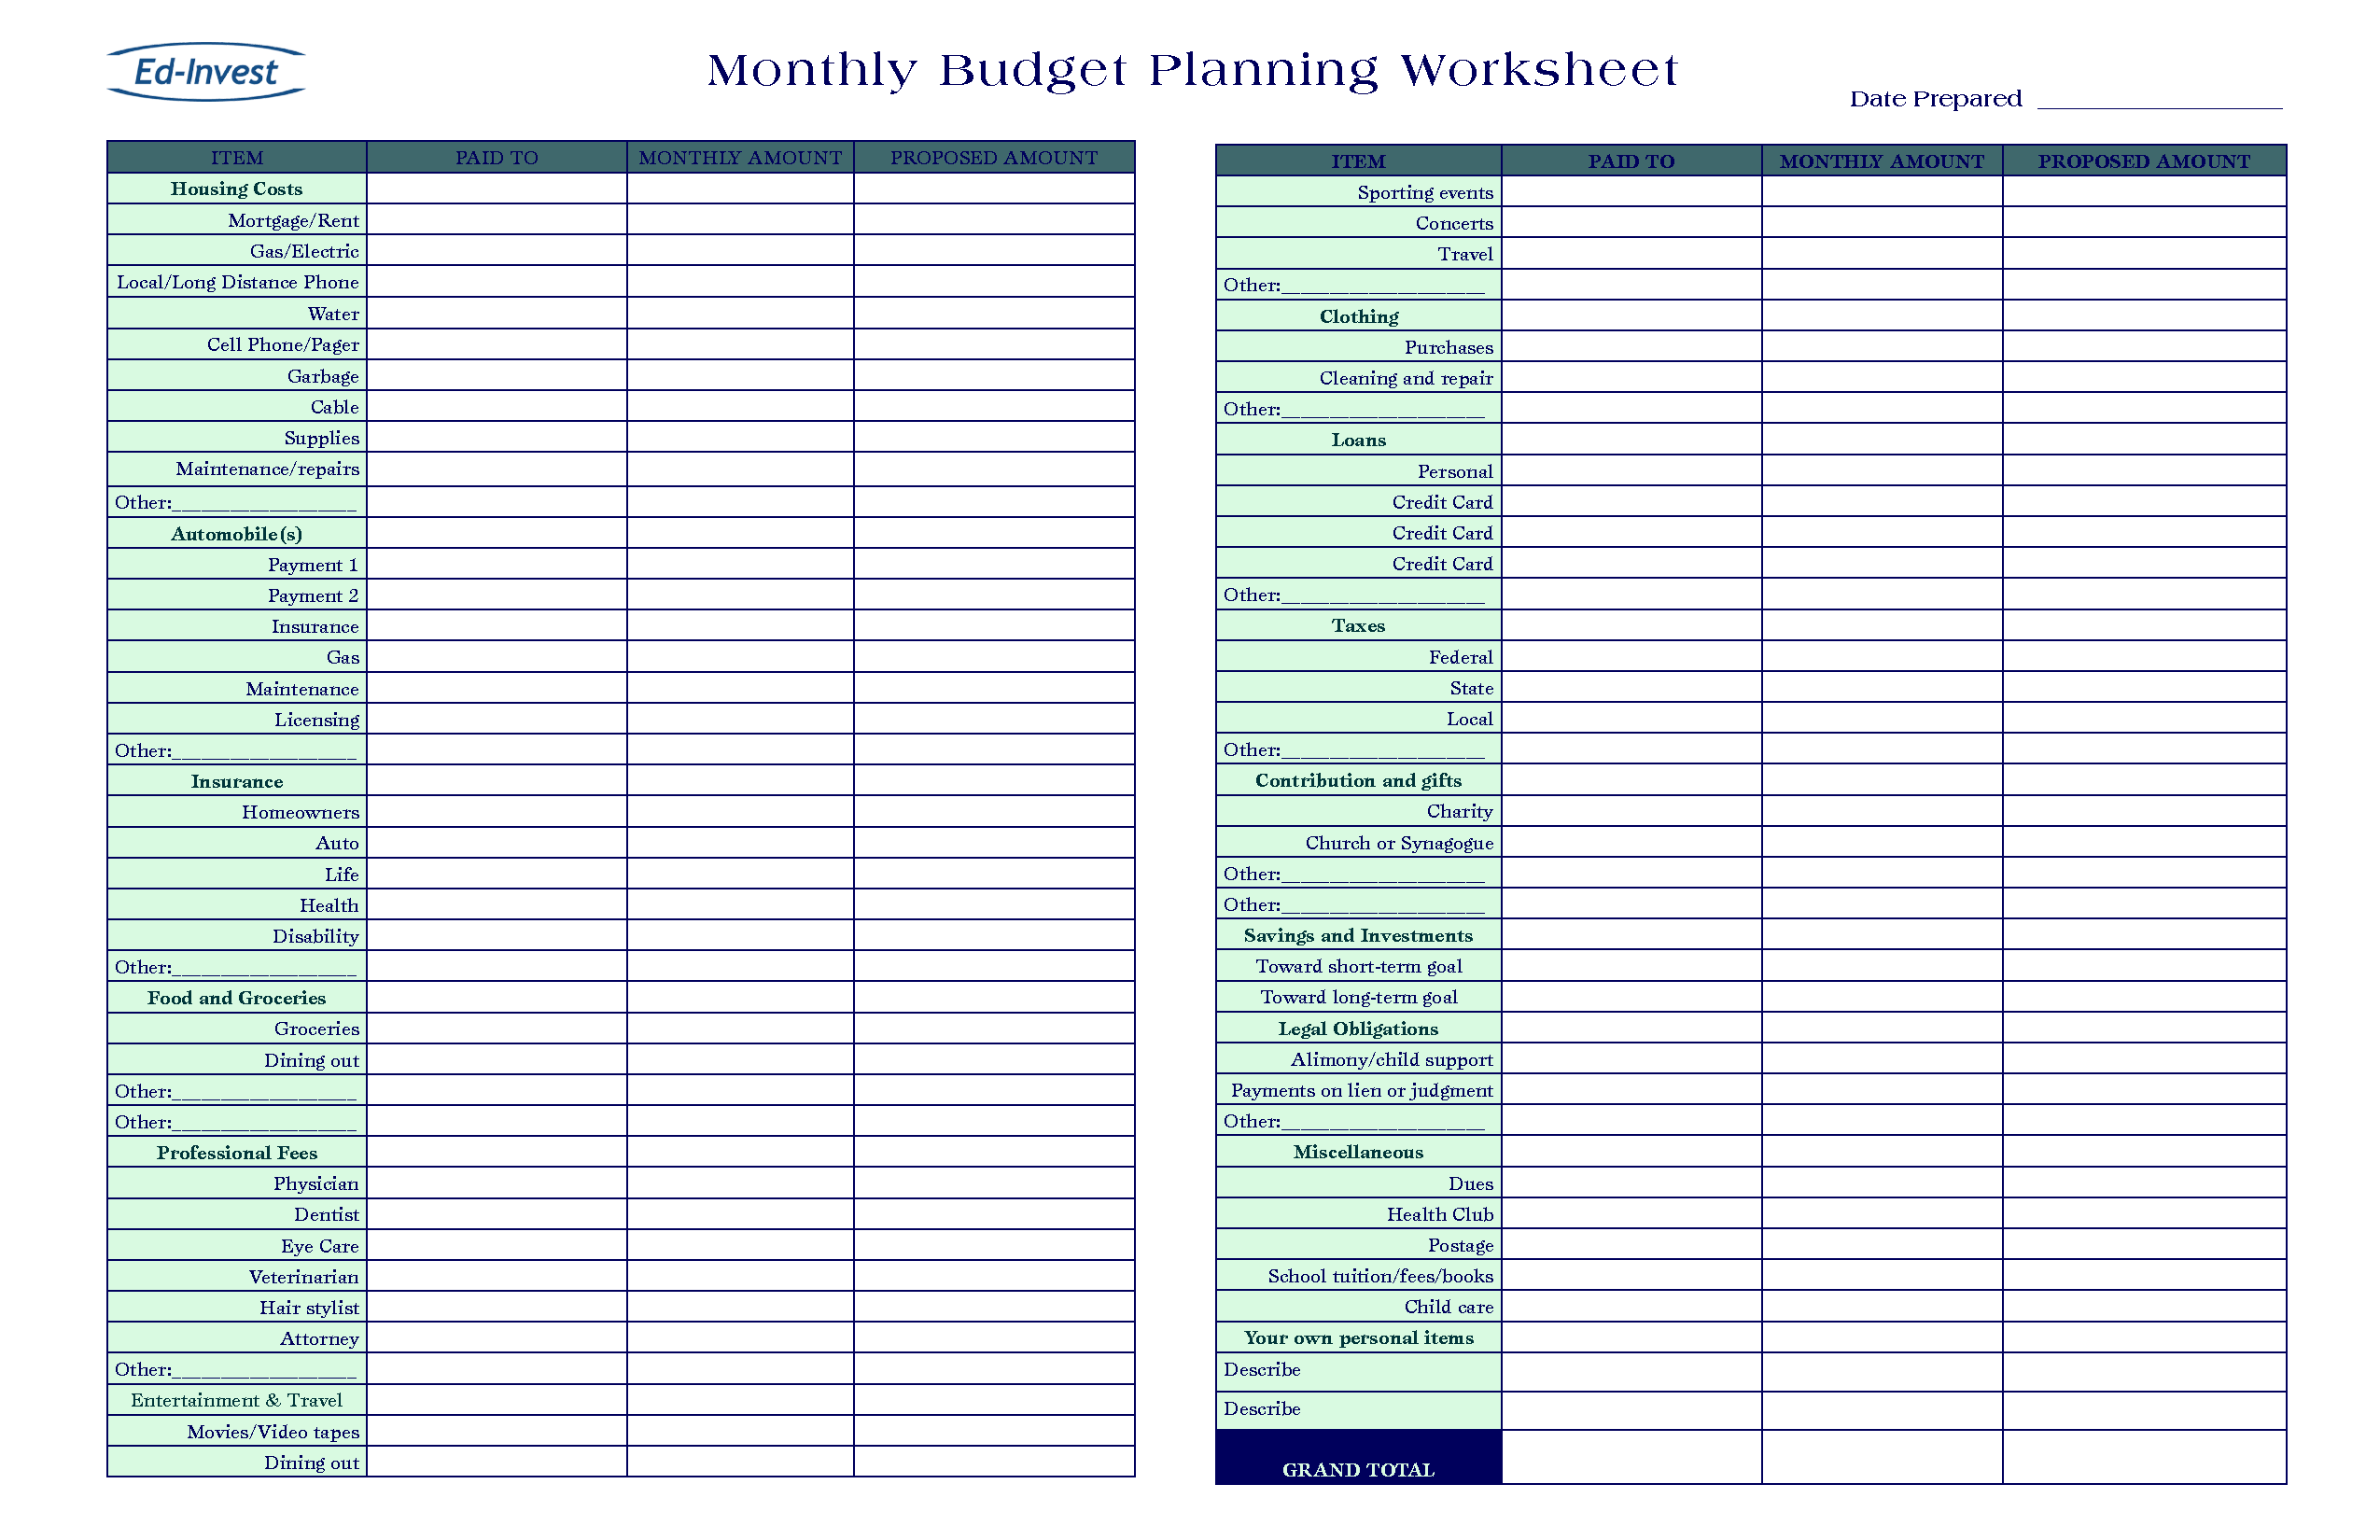 Annual Work Plan (Sample)